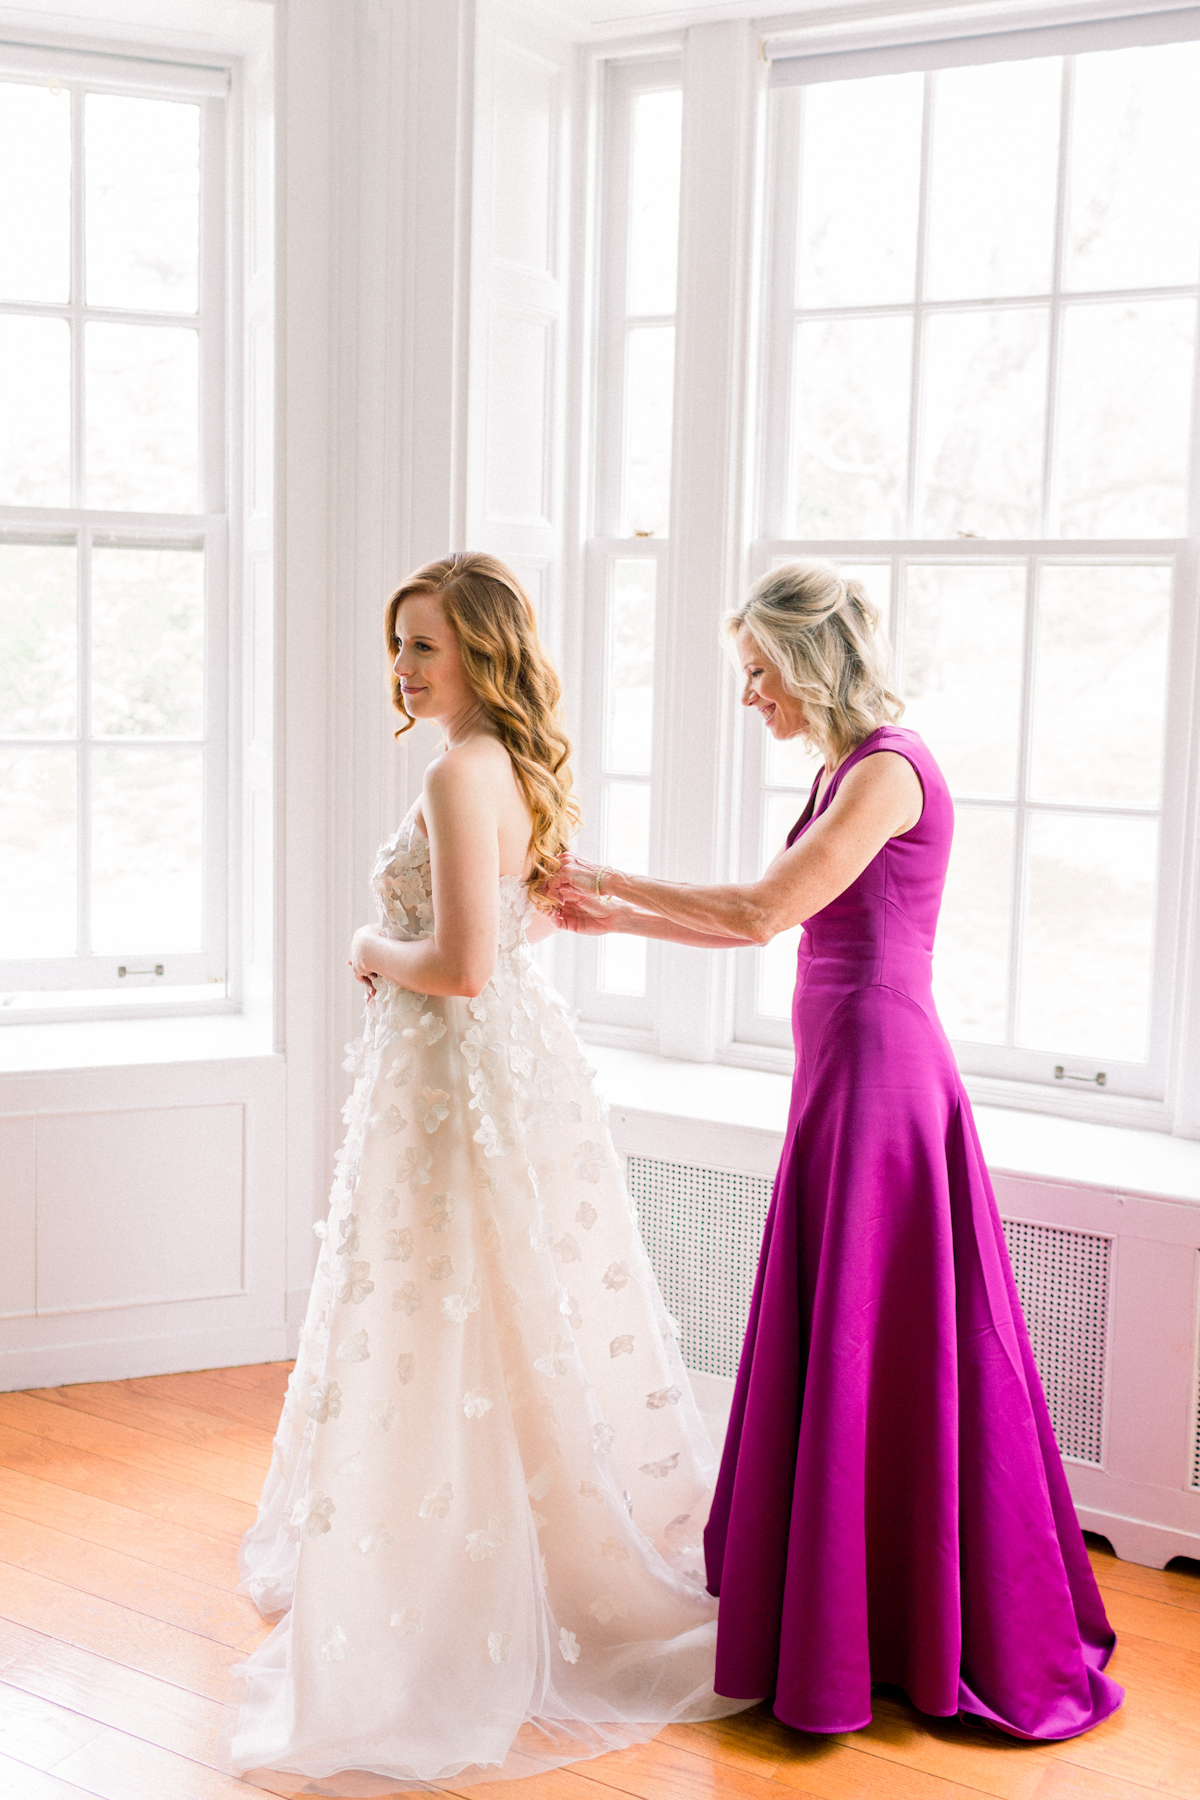 Wave Hill Wedding, photography by Mademoiselle Fiona, wedding planning by Ang Weddings and Events, flowers by Denise Fasanello, gown by Lela Rose